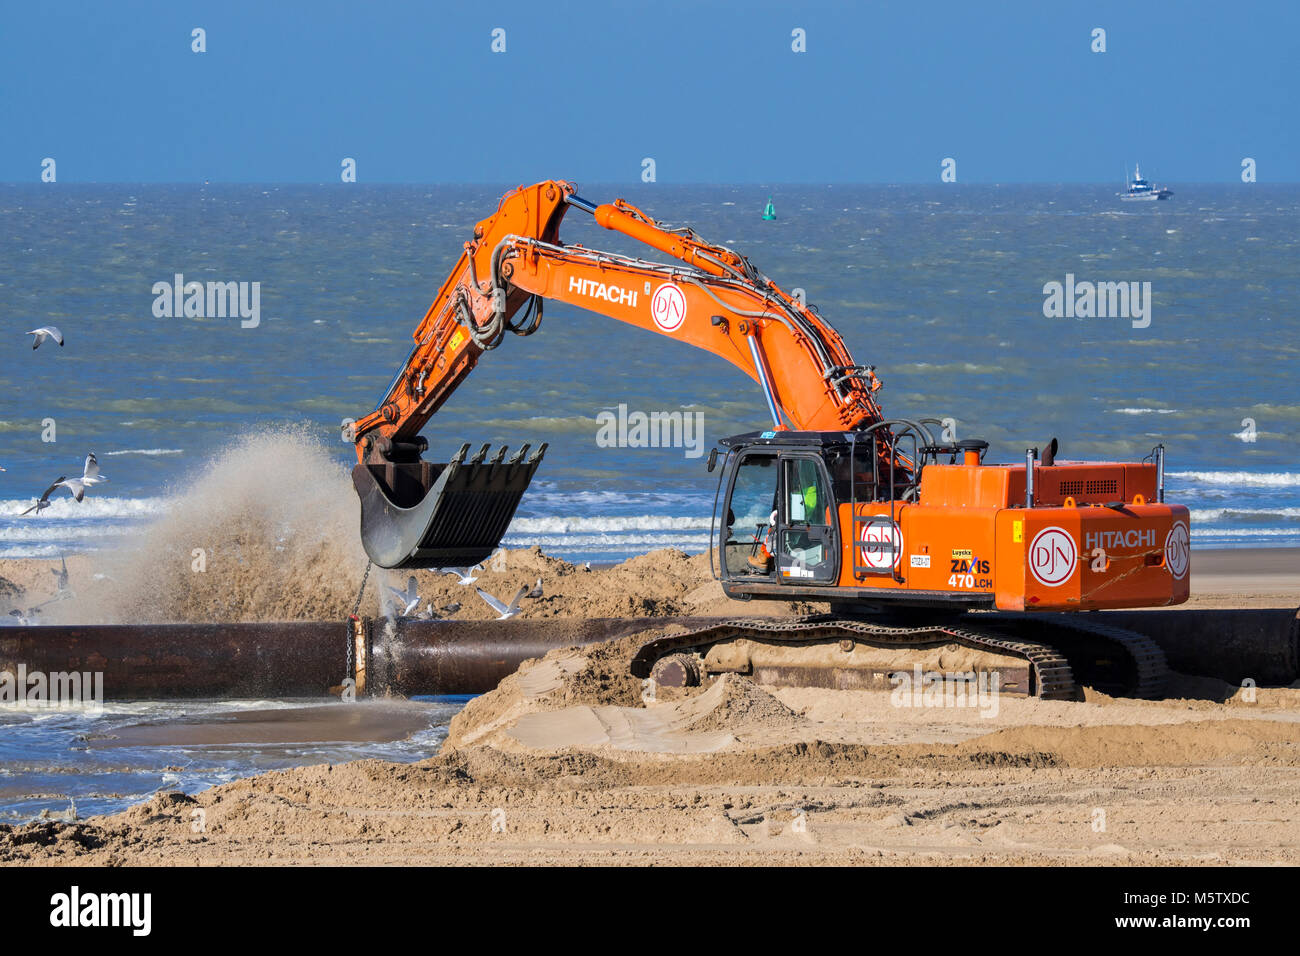 Hydraulic excavator connecting pipes of pipeline during sand replenishment / beach nourishment works along the Belgian - Stock Image